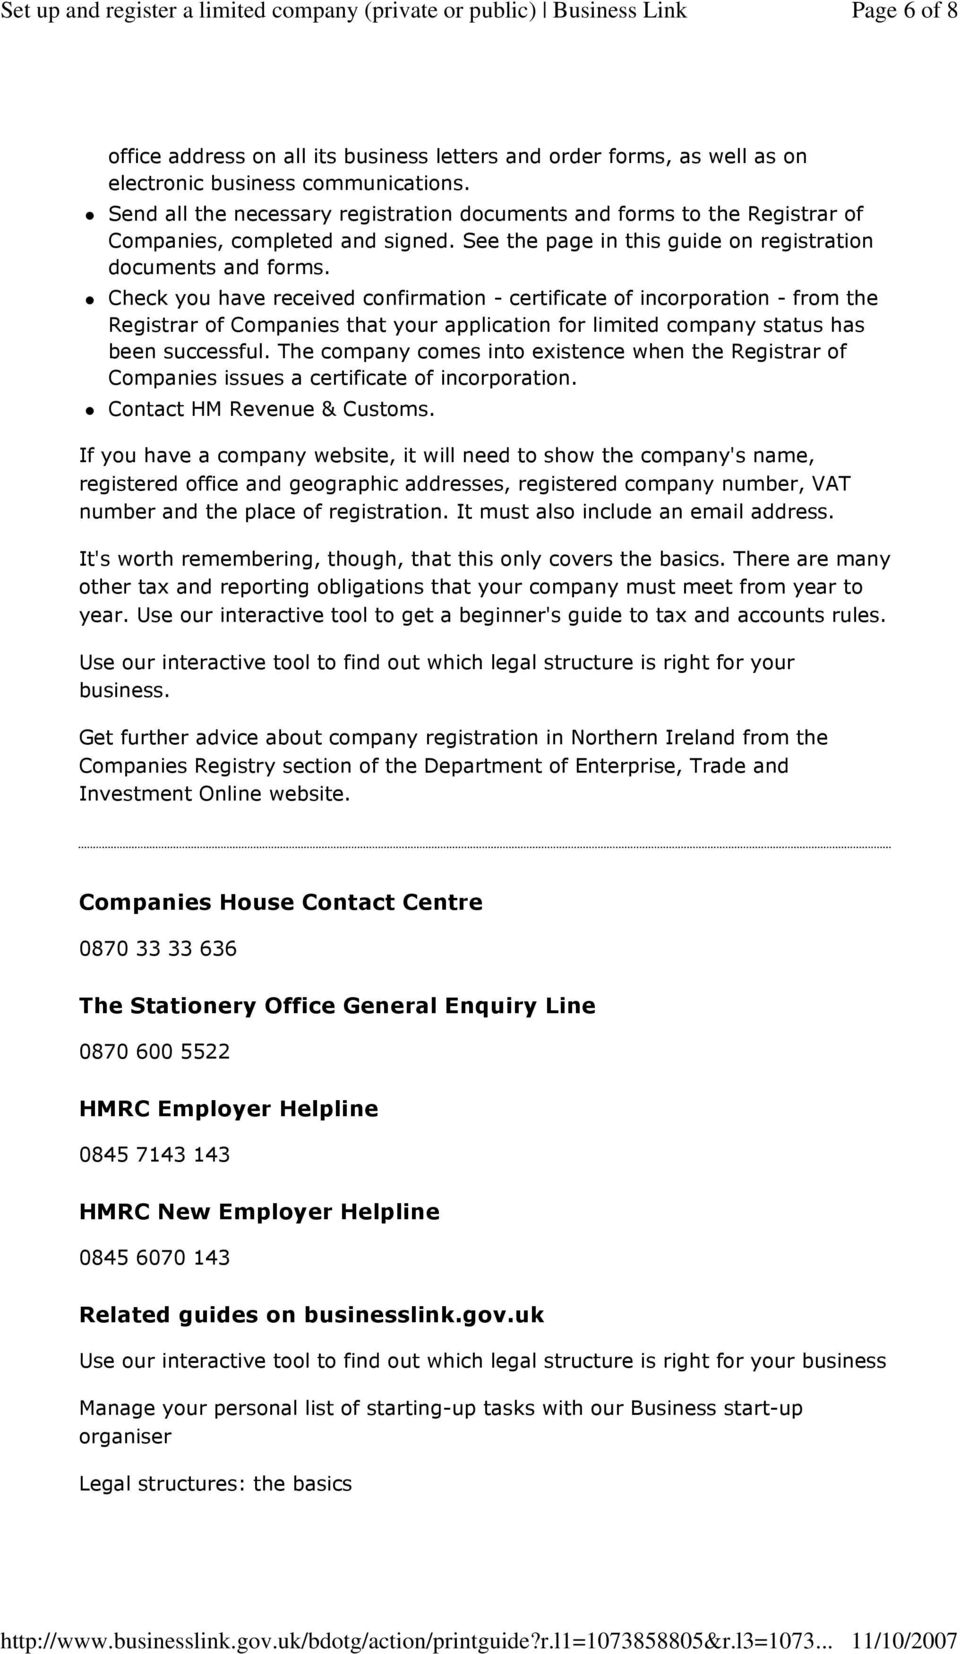 Check you have received confirmation - certificate of incorporation - from the Registrar of Companies that your application for limited company status has been successful.